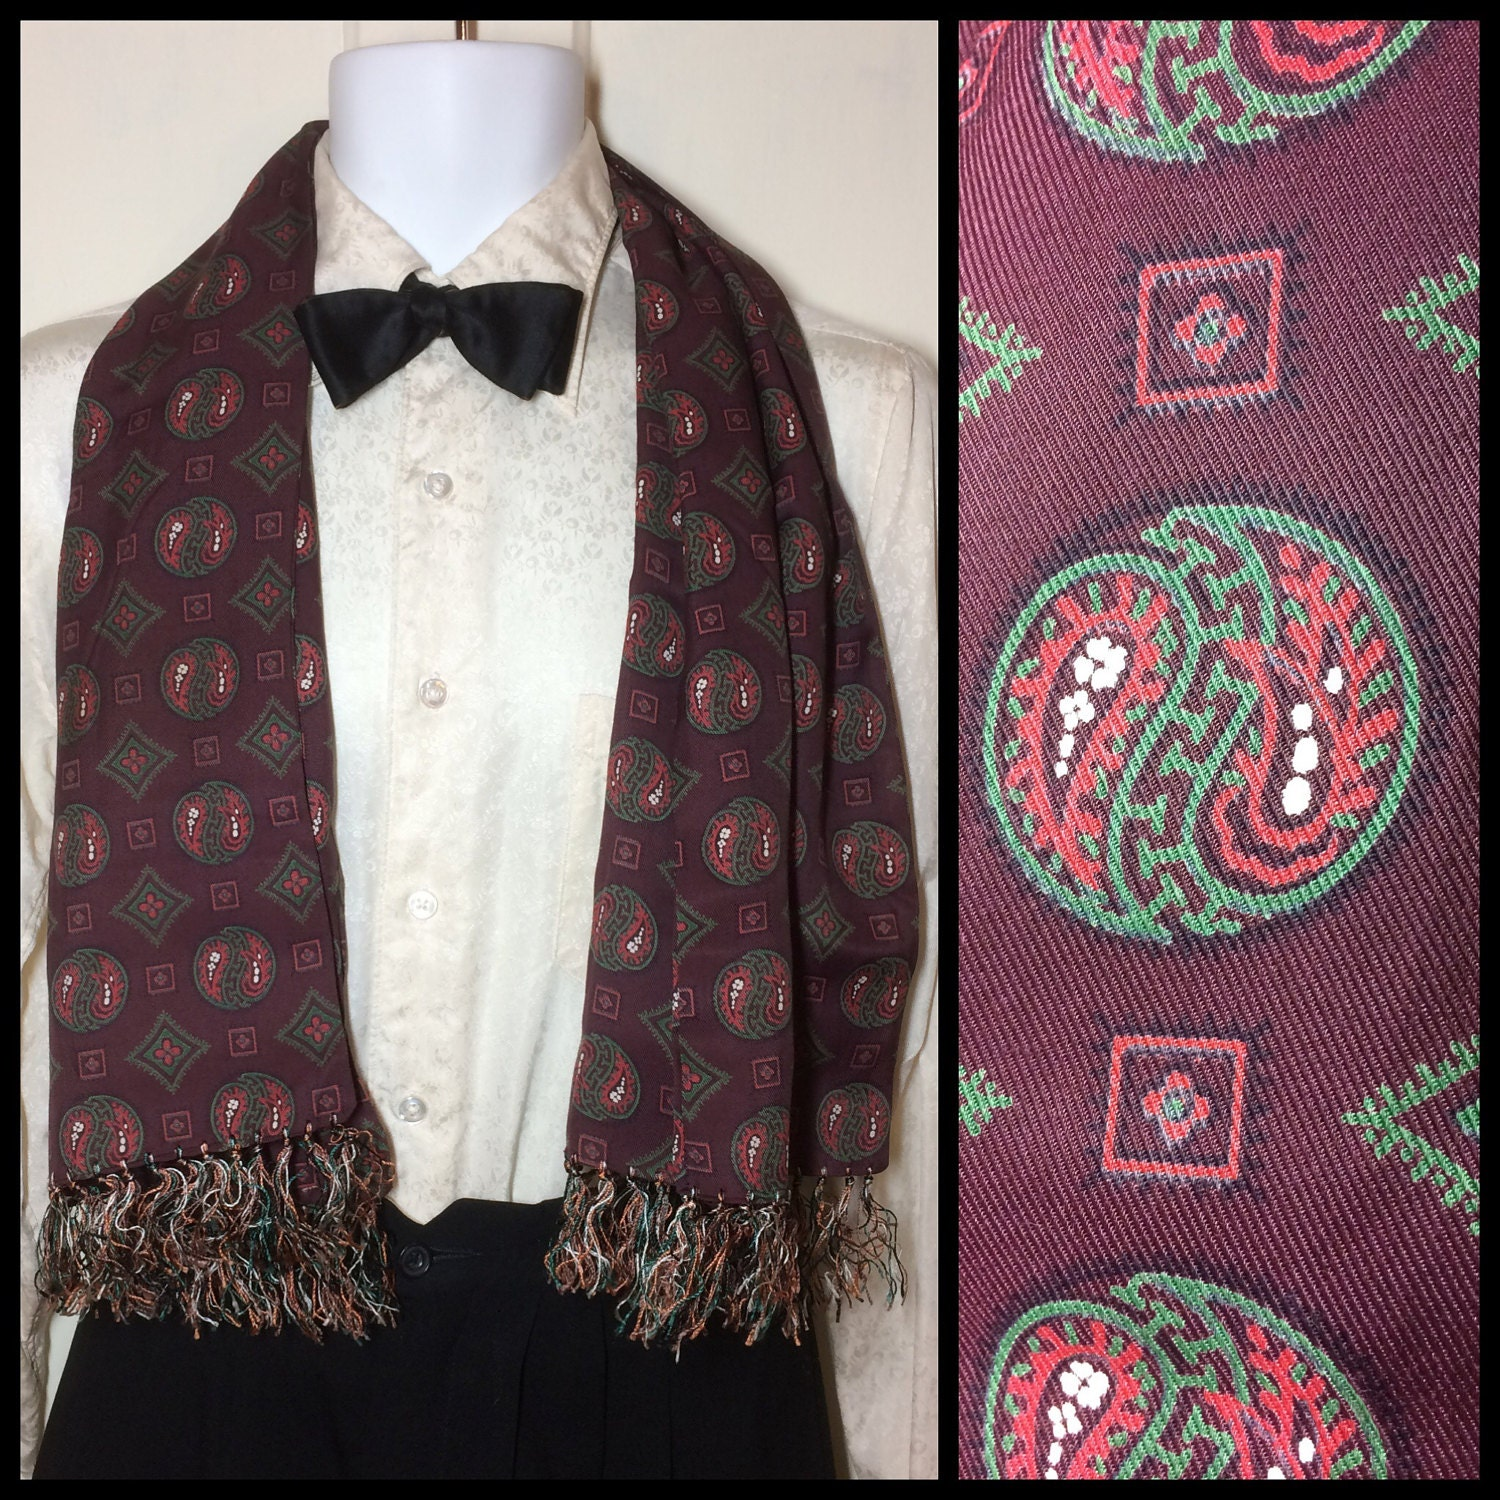 Vintage ascots opera scarves make great gifts